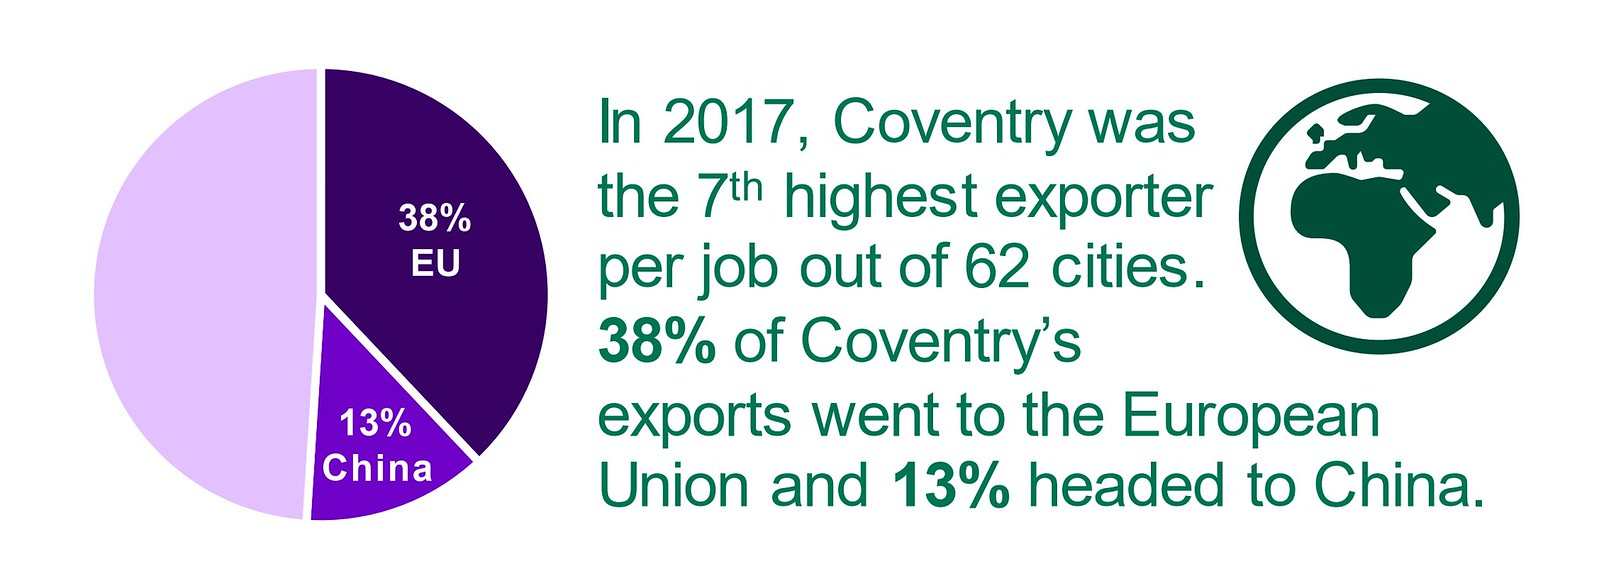 One Coventry Plan Annual Performance Report 2018-19 08 Exports